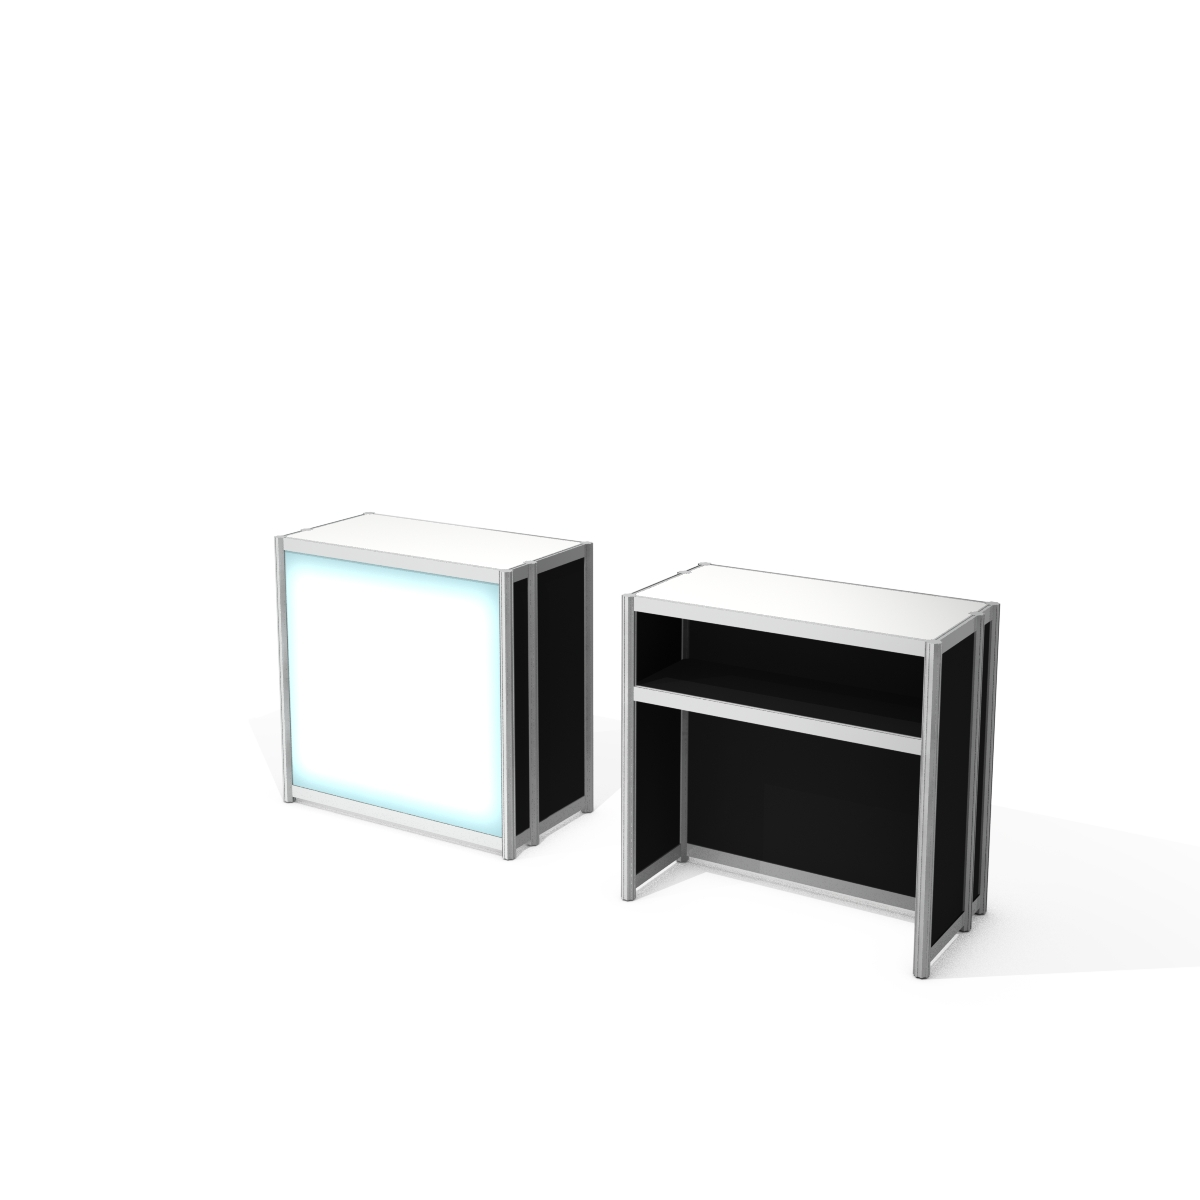 Aluminum frame counter with melamine infill, backlit facade - Black without personalization